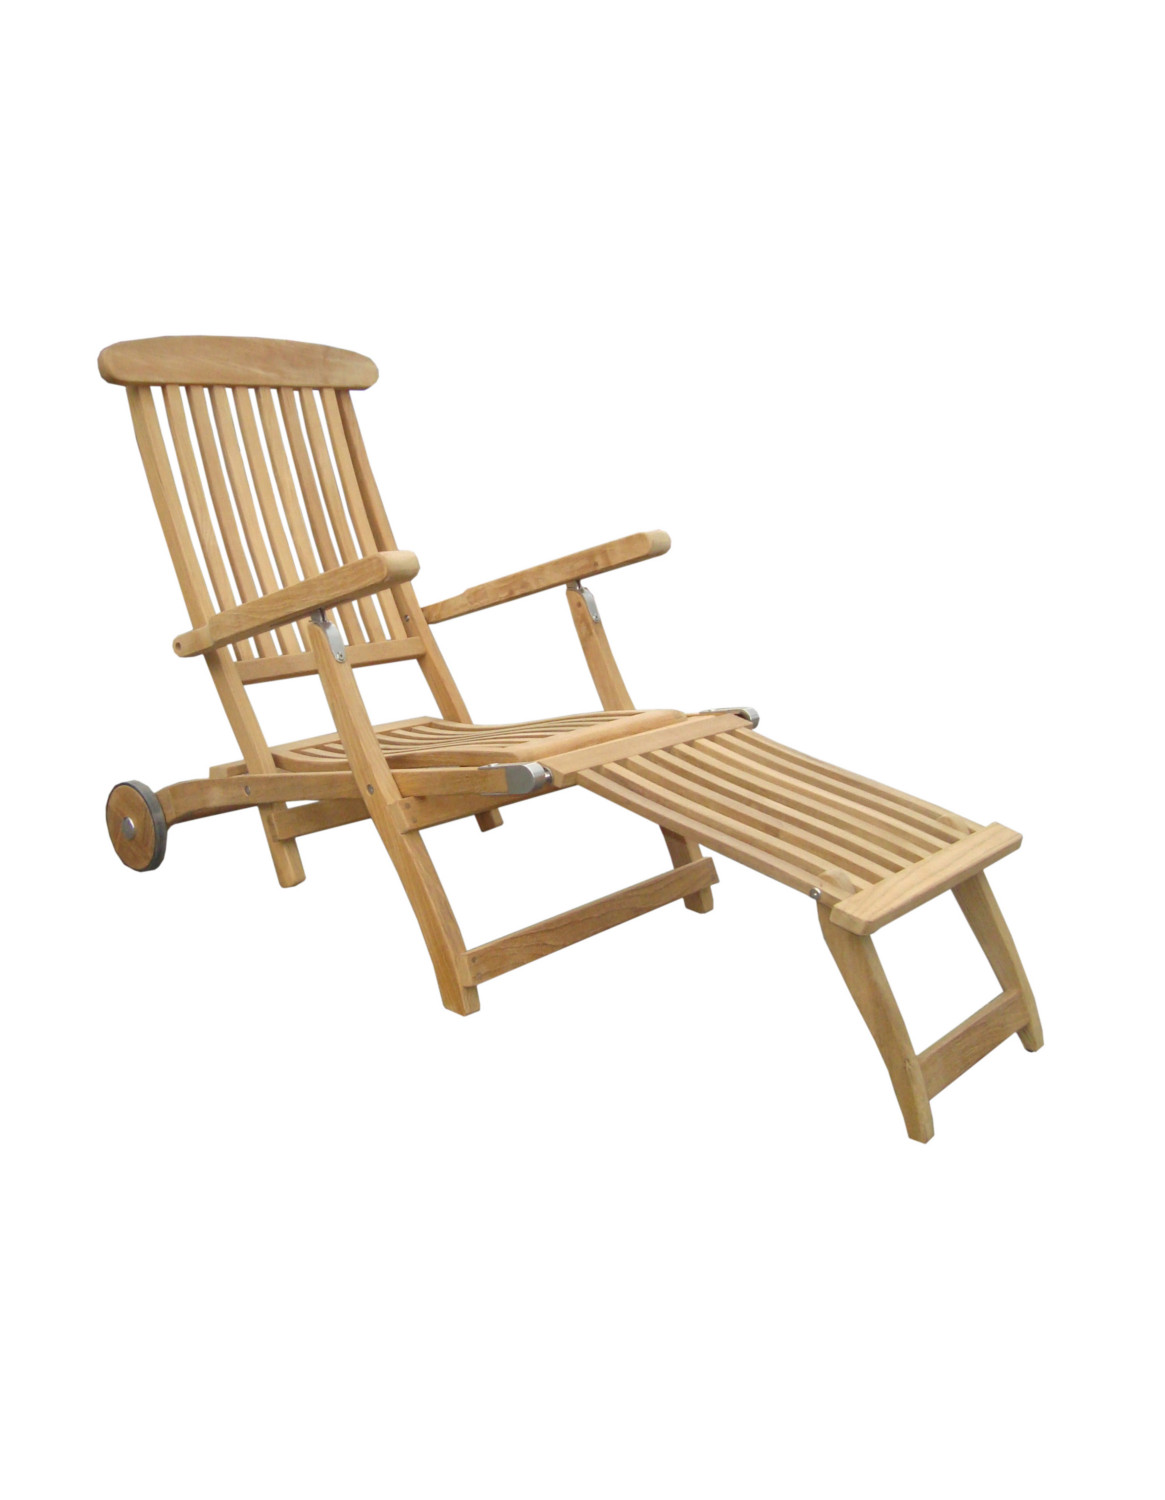 deckchair liege bueno mit rollen abnehmbaren fu teil teak dippold gartenm bel. Black Bedroom Furniture Sets. Home Design Ideas